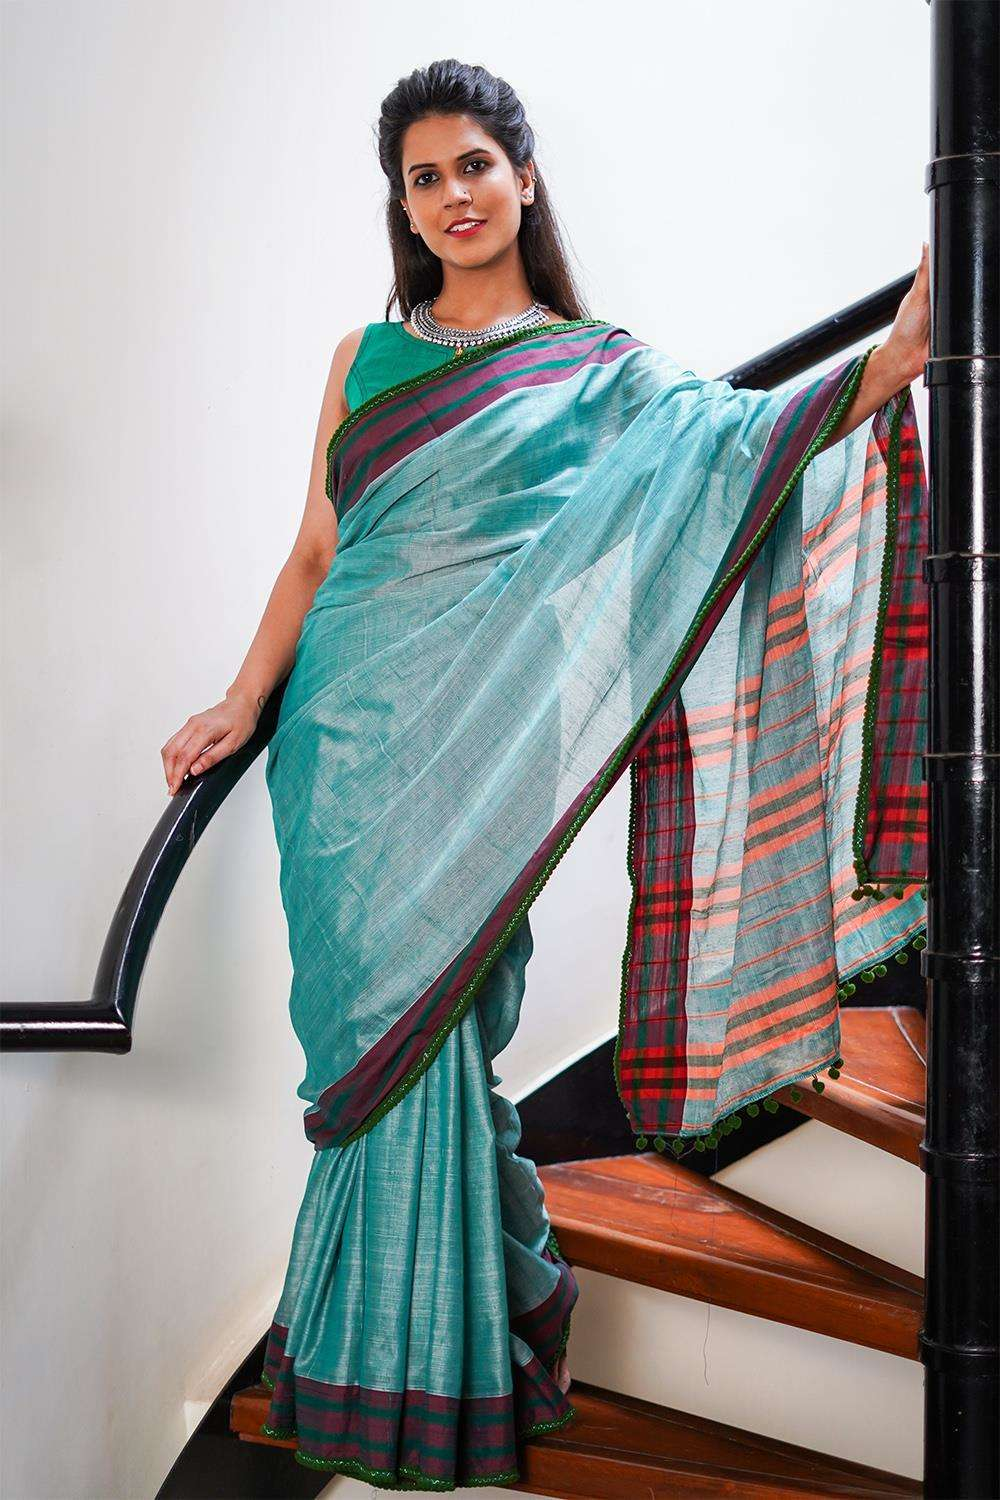 Sage green Narayanpet handloom cotton saree with maroon border and green pom pom edging - House of Blouse